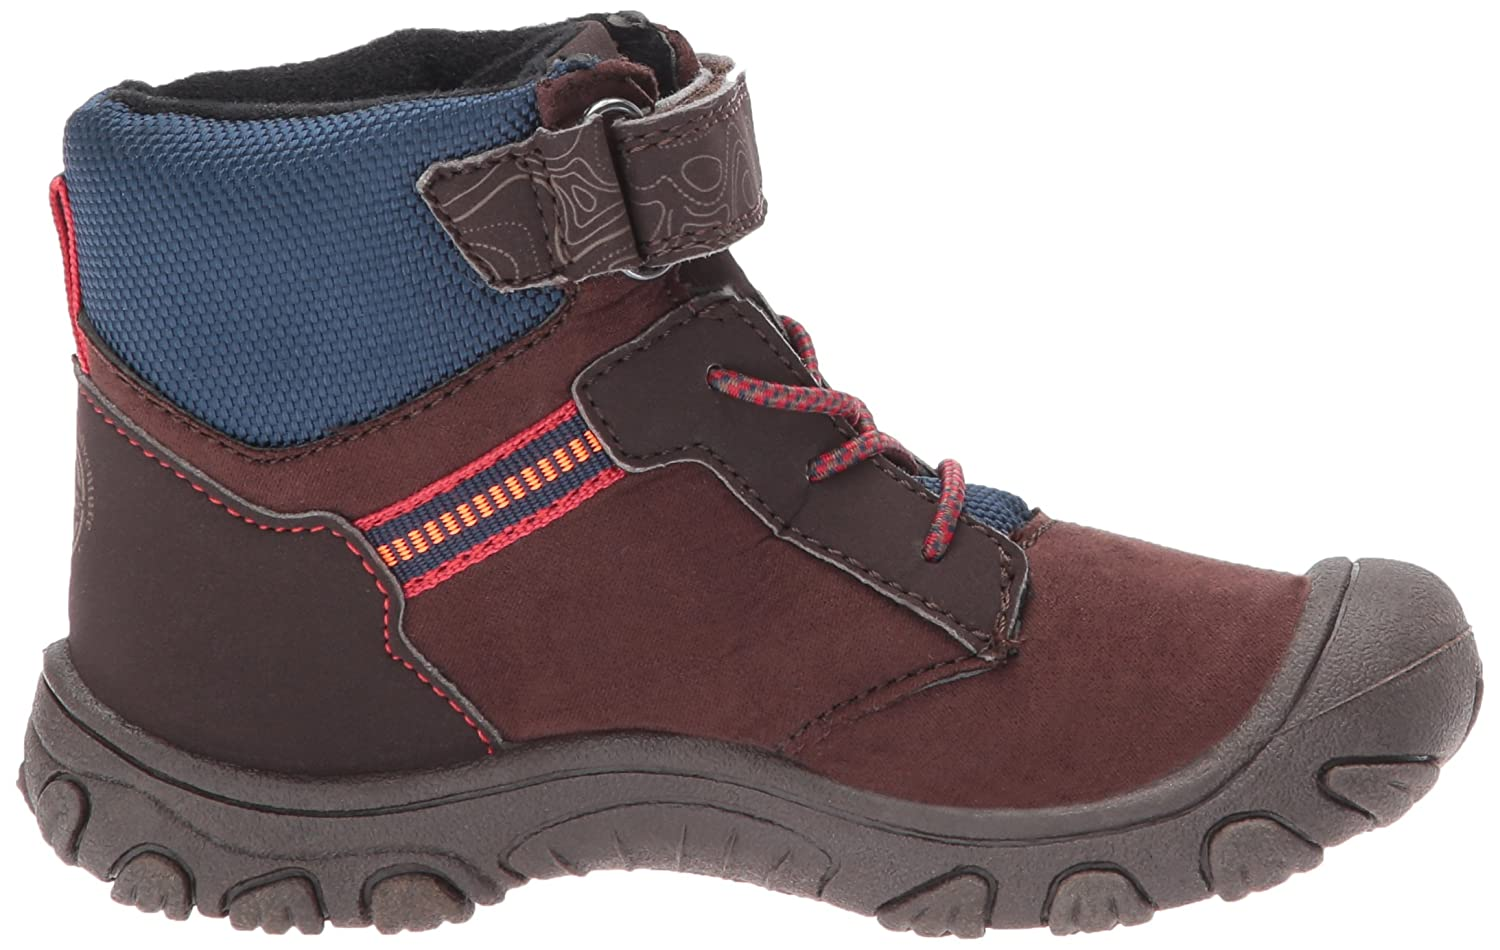 Kids Rainier Boys Waterproof Boot Hiking M.A.P